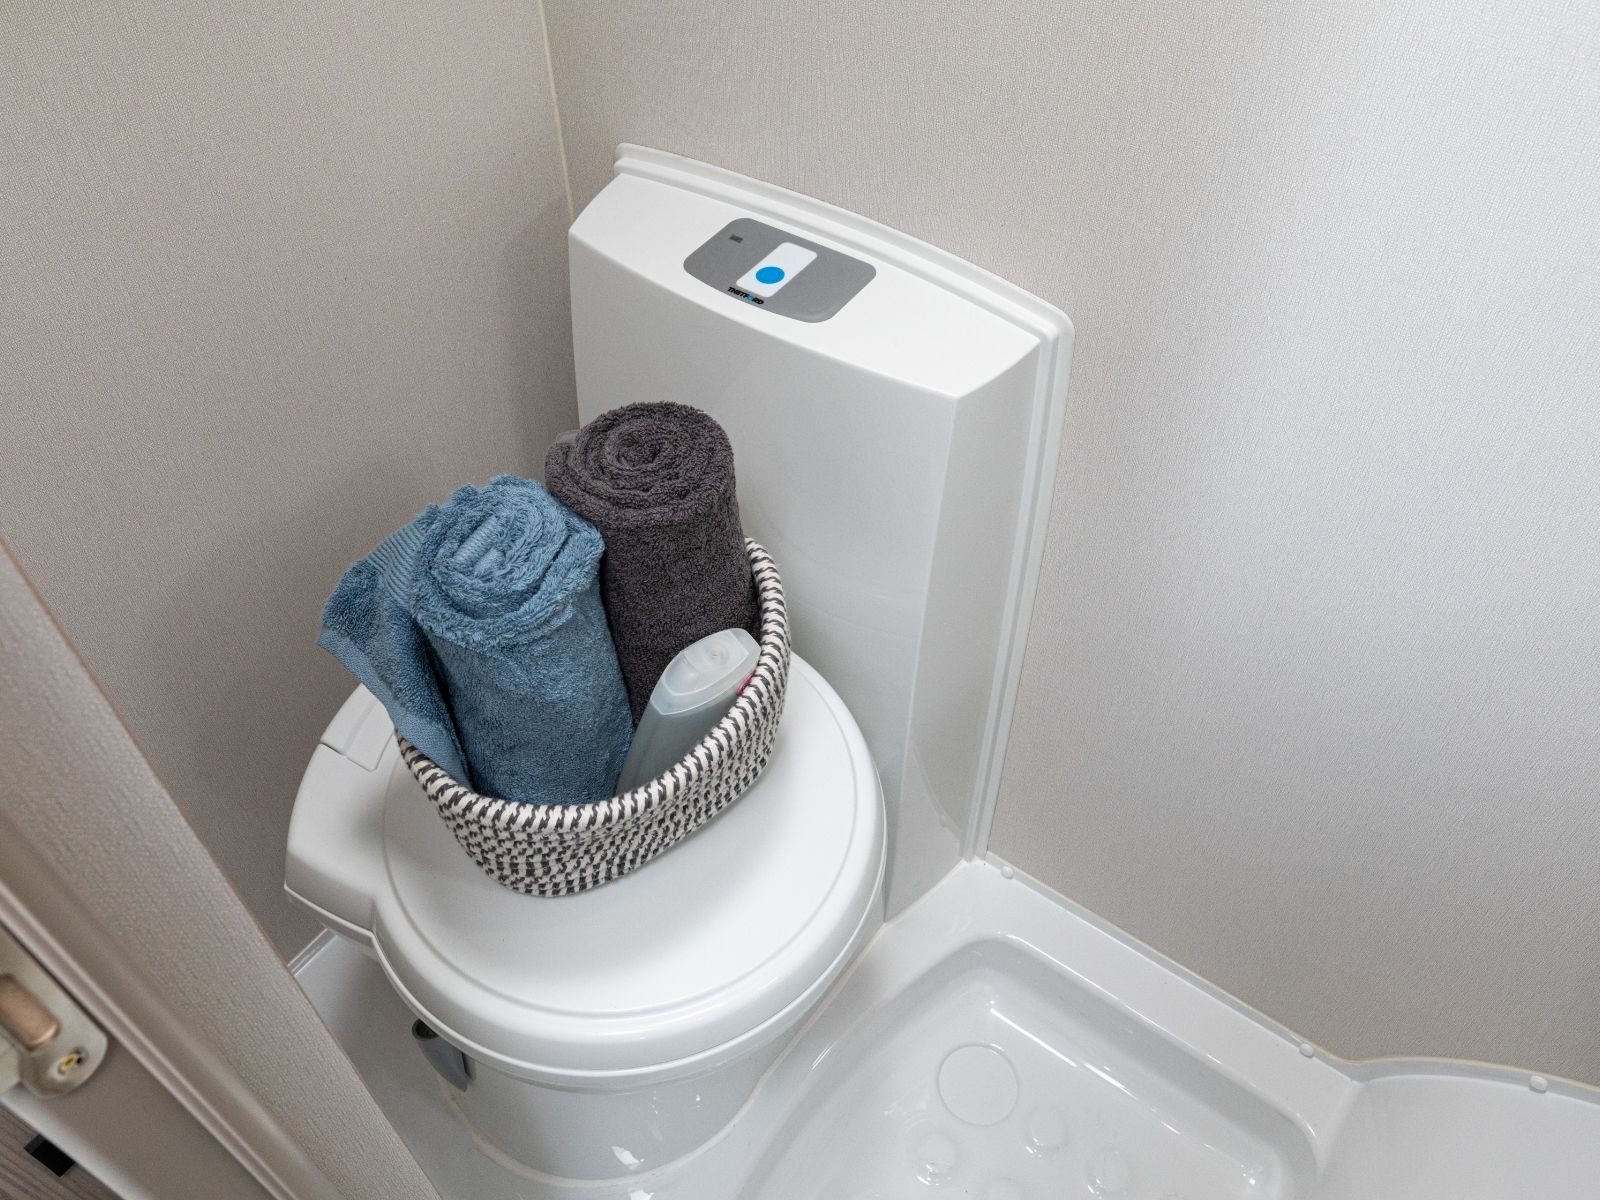 Toilet with basket of towels sat on top '